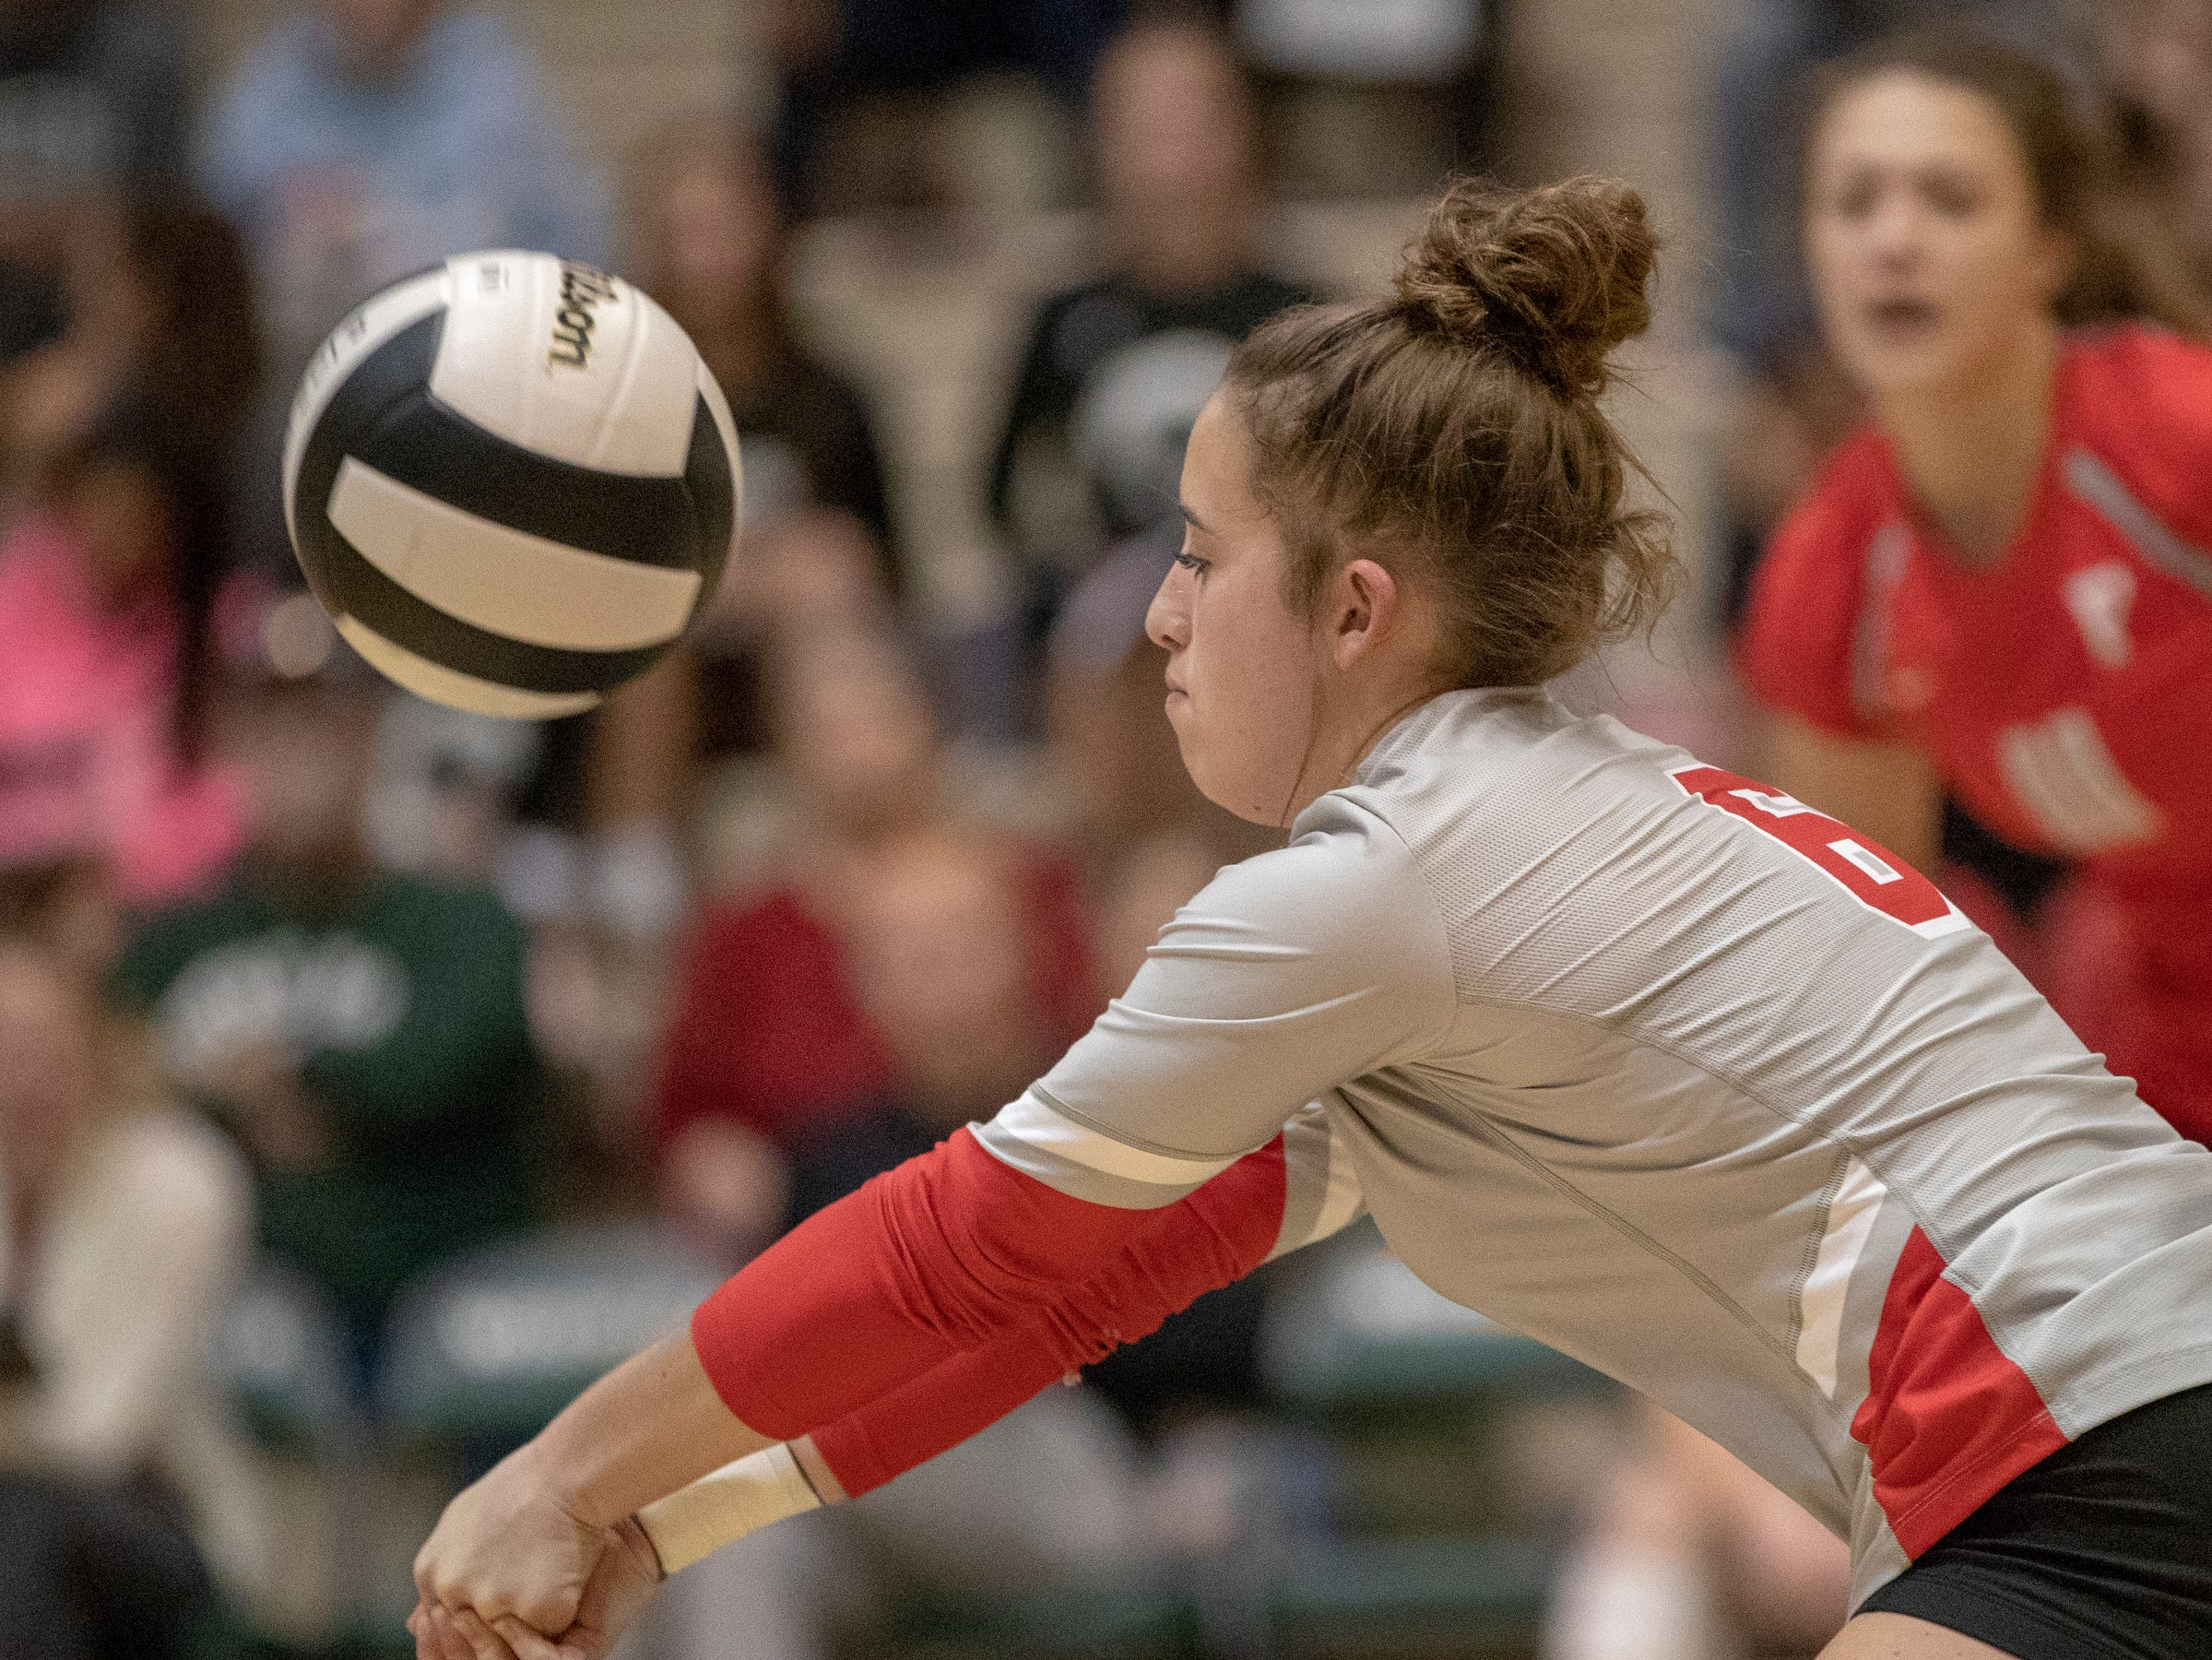 Emma Rosenberg bumps a ball as she and Fishers High School teammates defeat Hamilton Southeastern High School in three straight sets in the first round of the sectional at Westfield High School, Westfield, Thursday, Oct. 11, 2018. The win matches them up with Westfield High School for a game on Saturday morning at 11a.m.